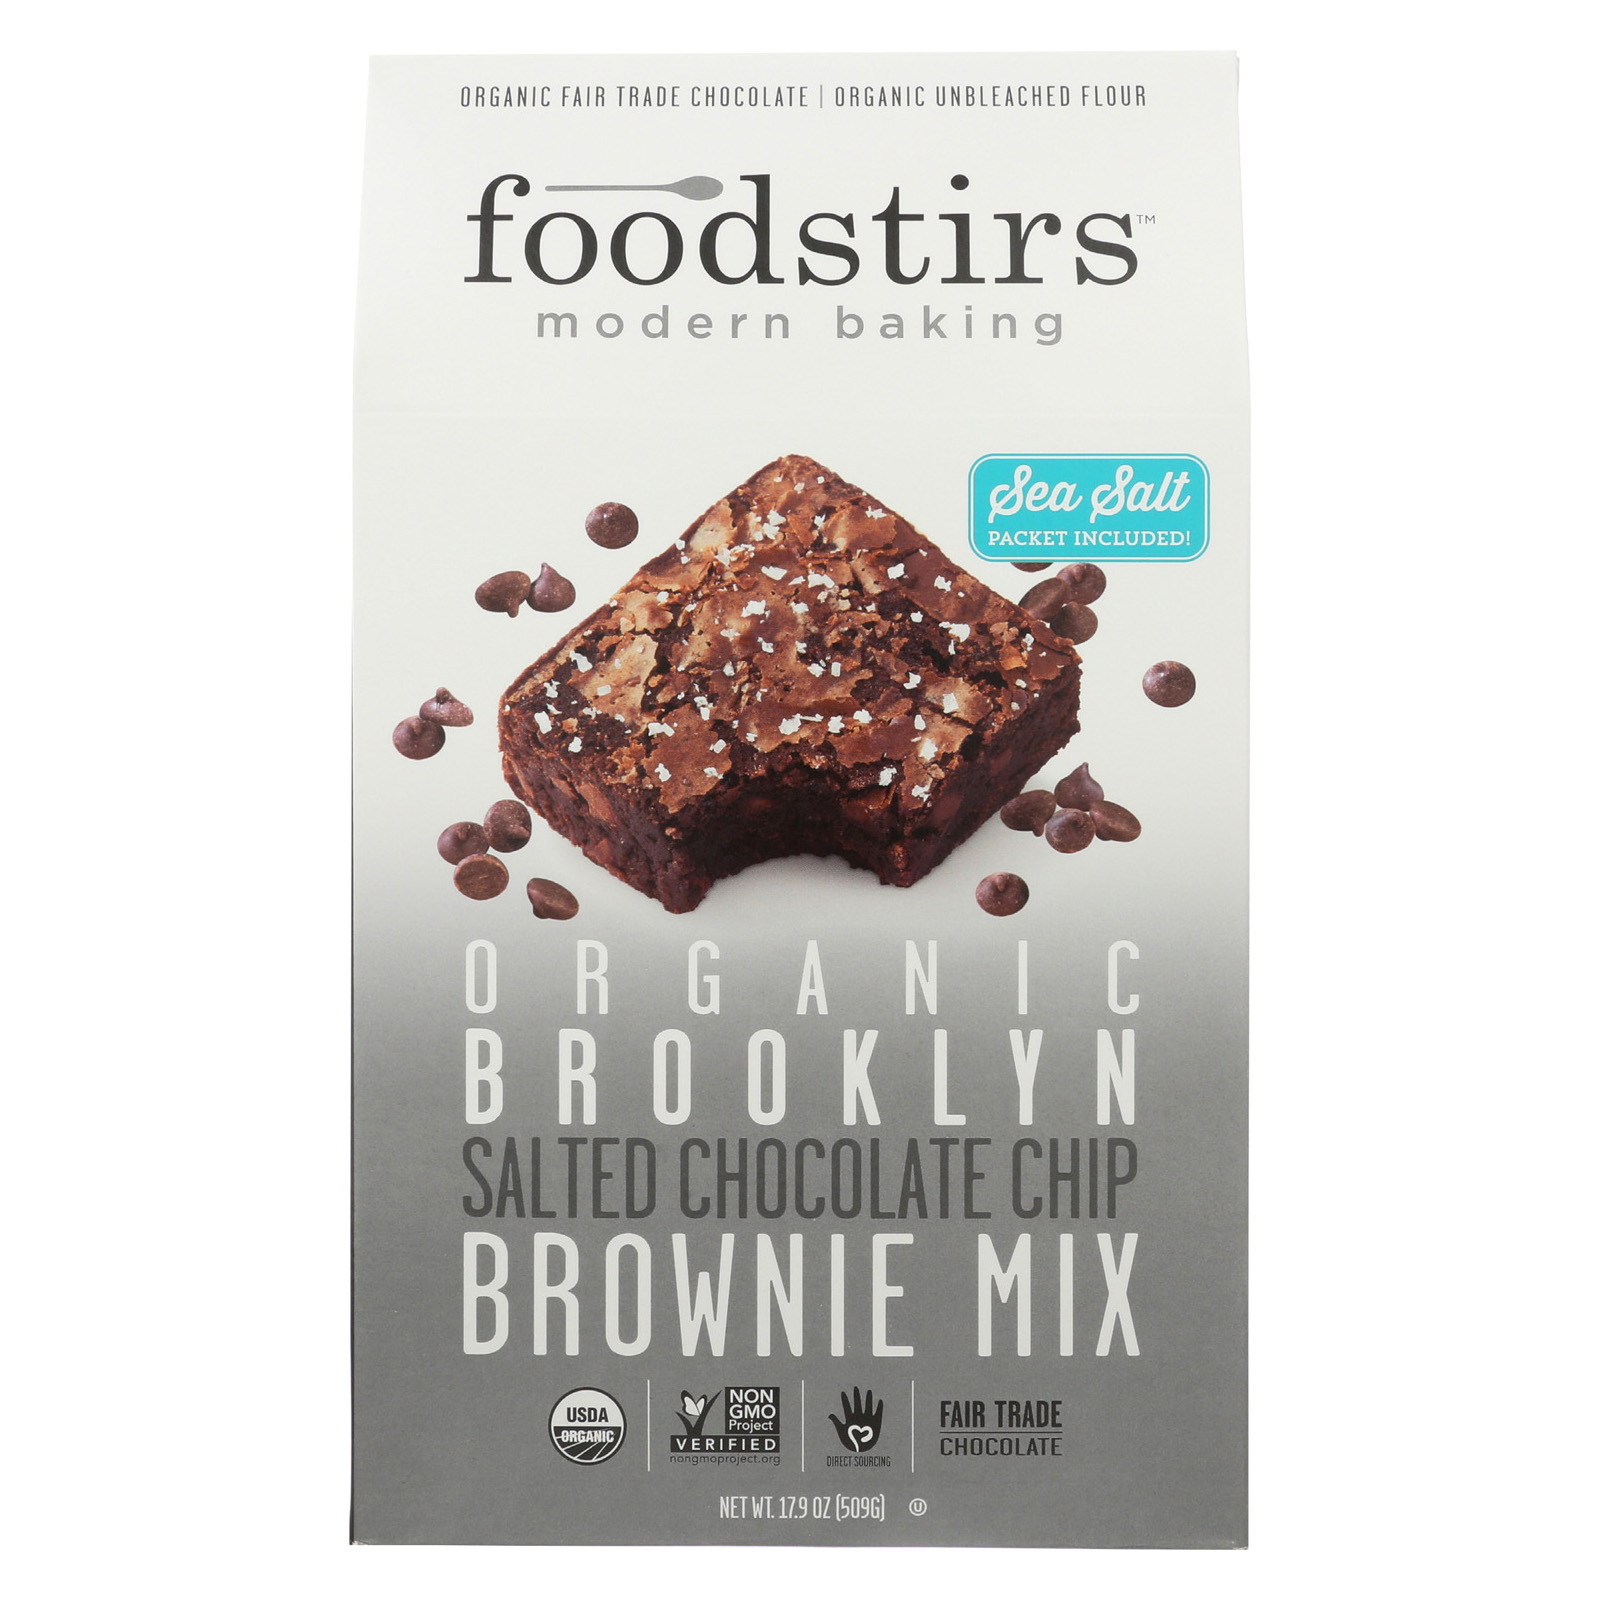 Foodstirs Organic Baking Mix - Brooklyn Brownie - Case of 6 - 17.9 oz